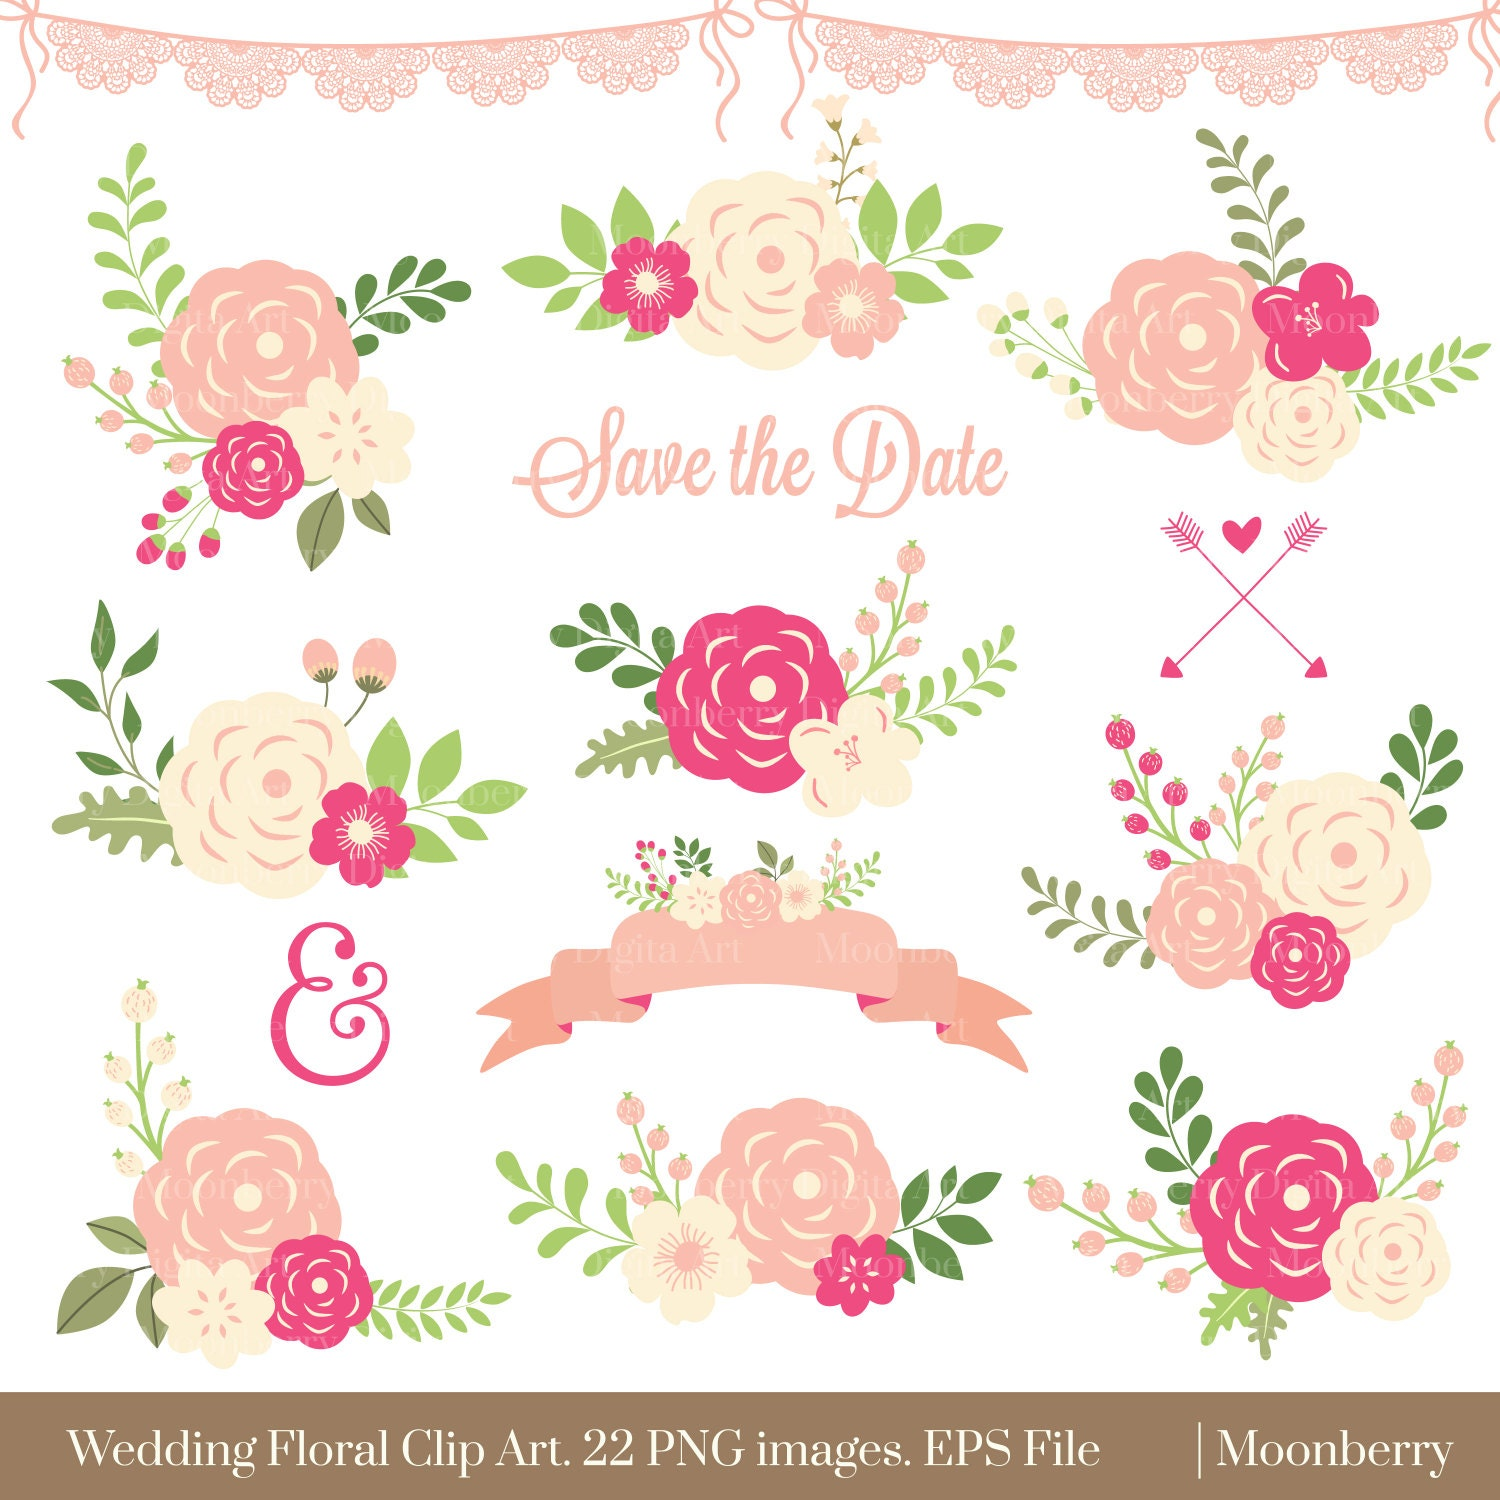 Floral clipart wedding floral clipart flowers zoom stopboris Choice Image